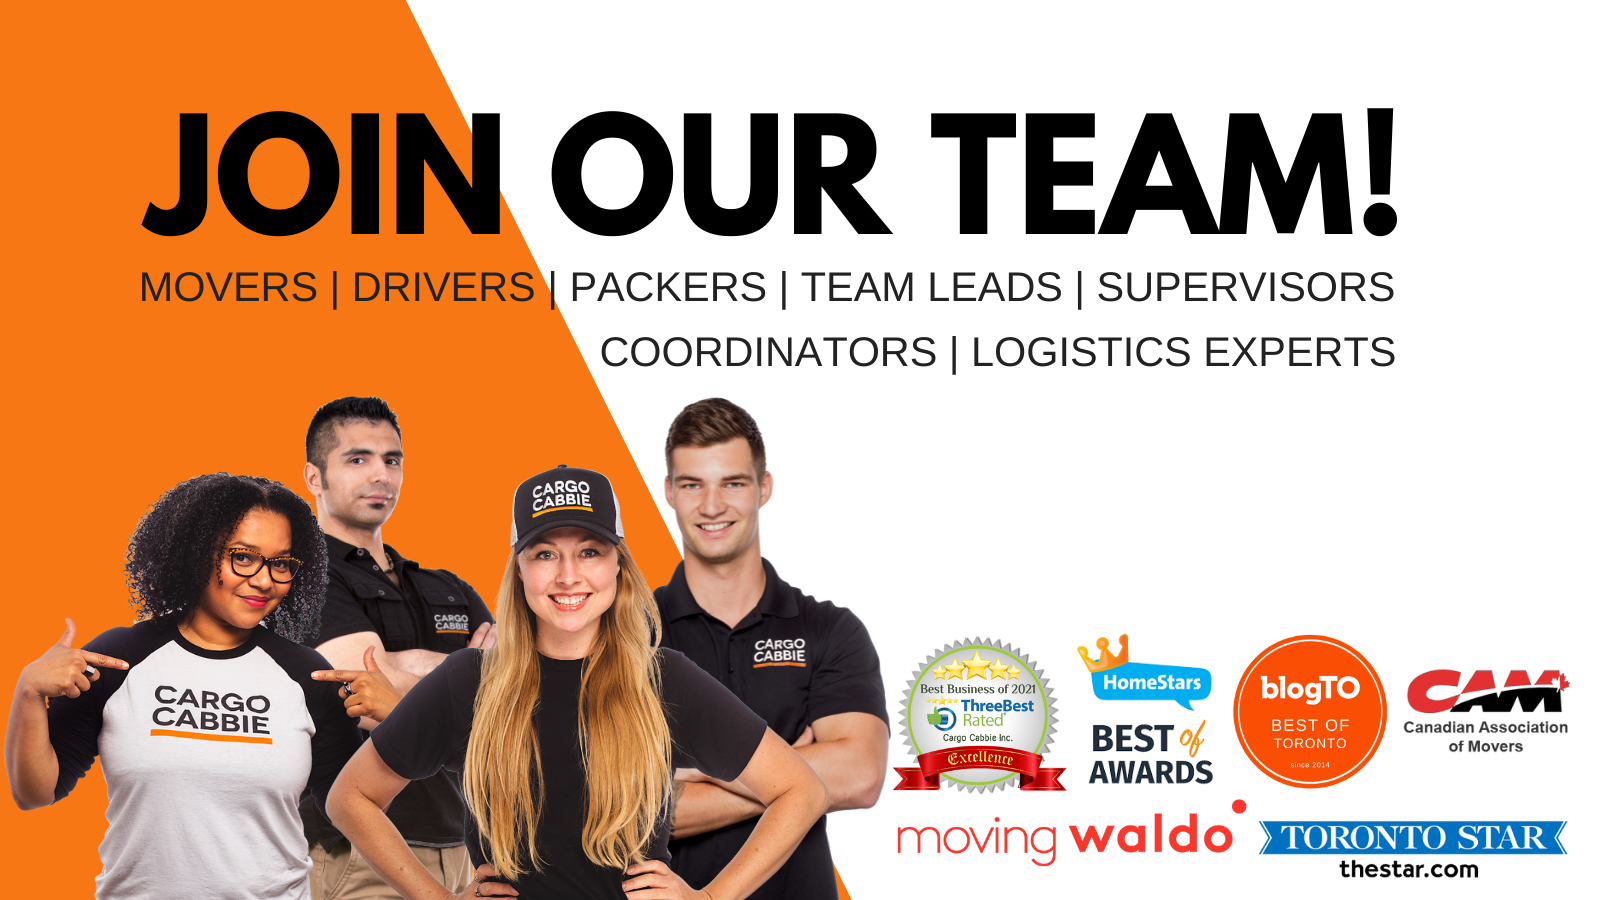 CARGO CABBIE JOIN OUR STAR TEAM 2021 careers jobs APPLY TODAY